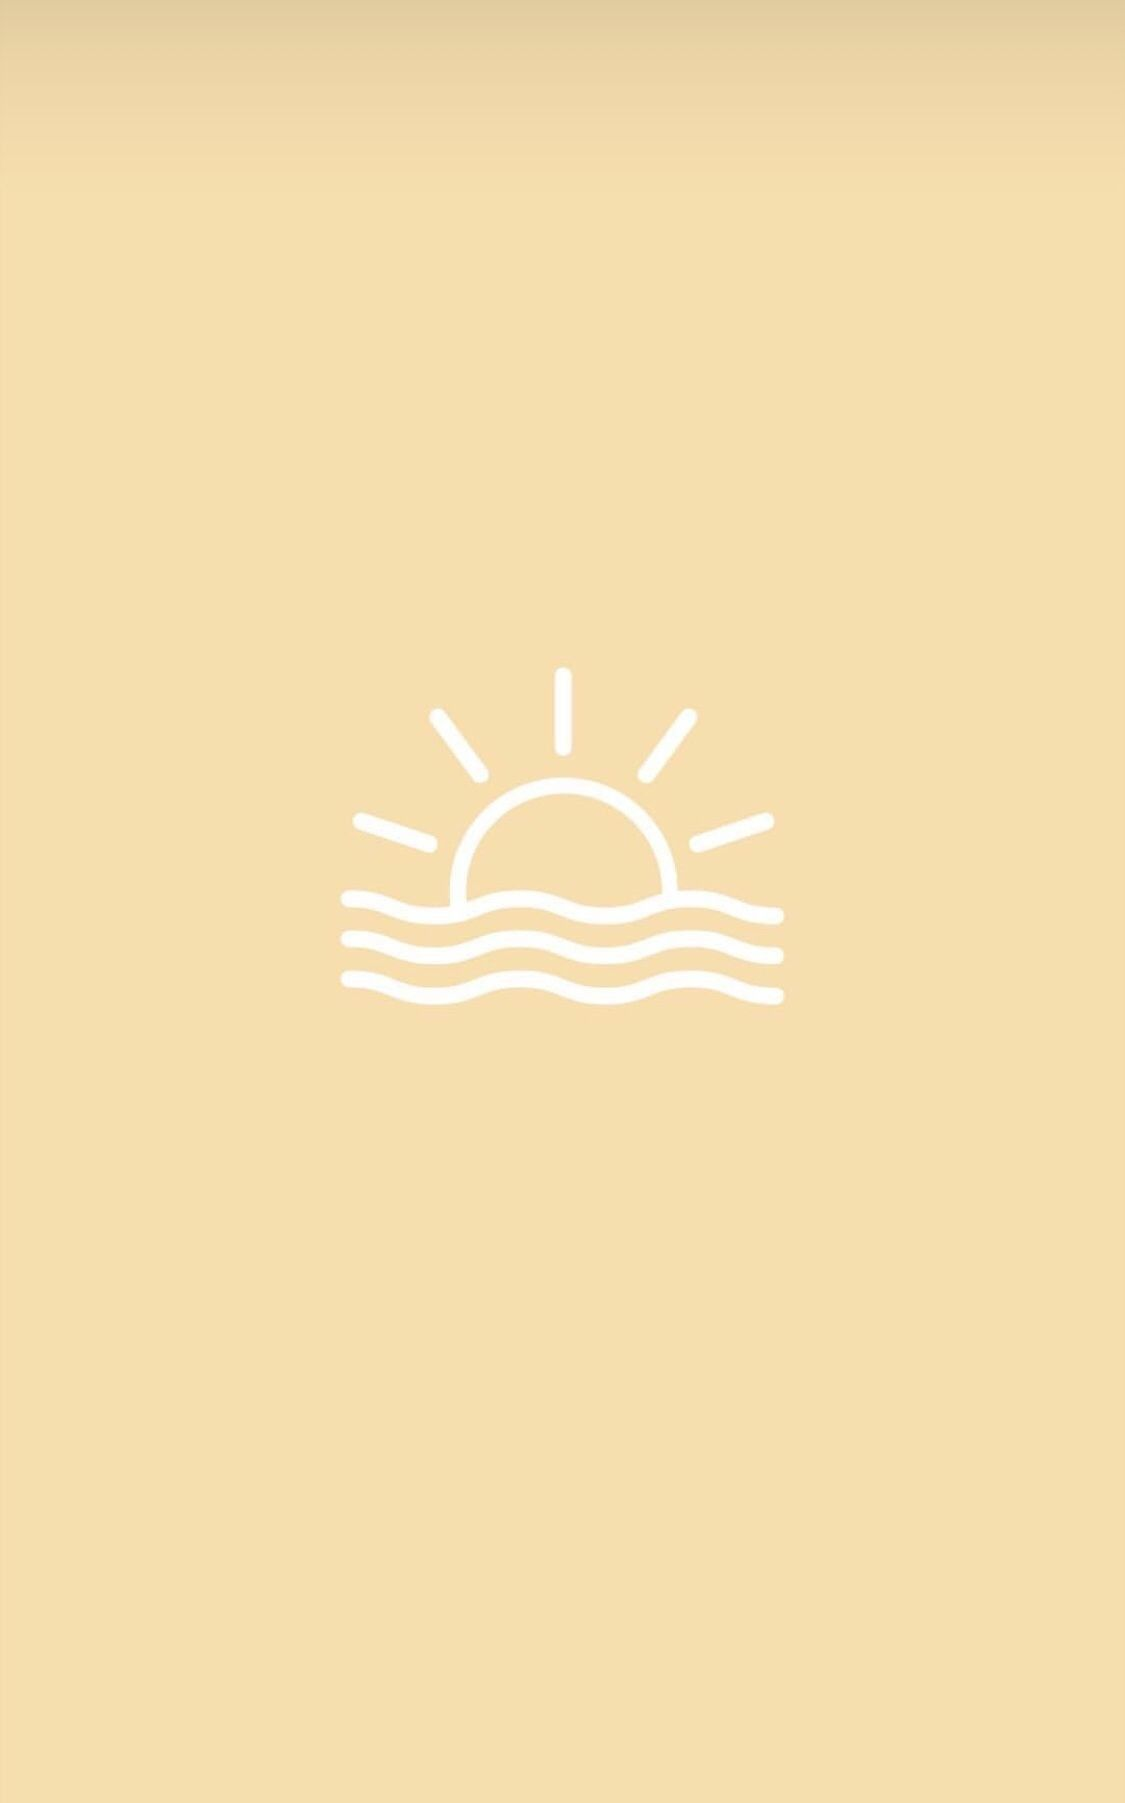 Wallpaper Yellow White Simple Sunset Sea Sun Symbols Iphone Wallpaper Vsco Apple Watch Wallpaper Simple Wallpapers